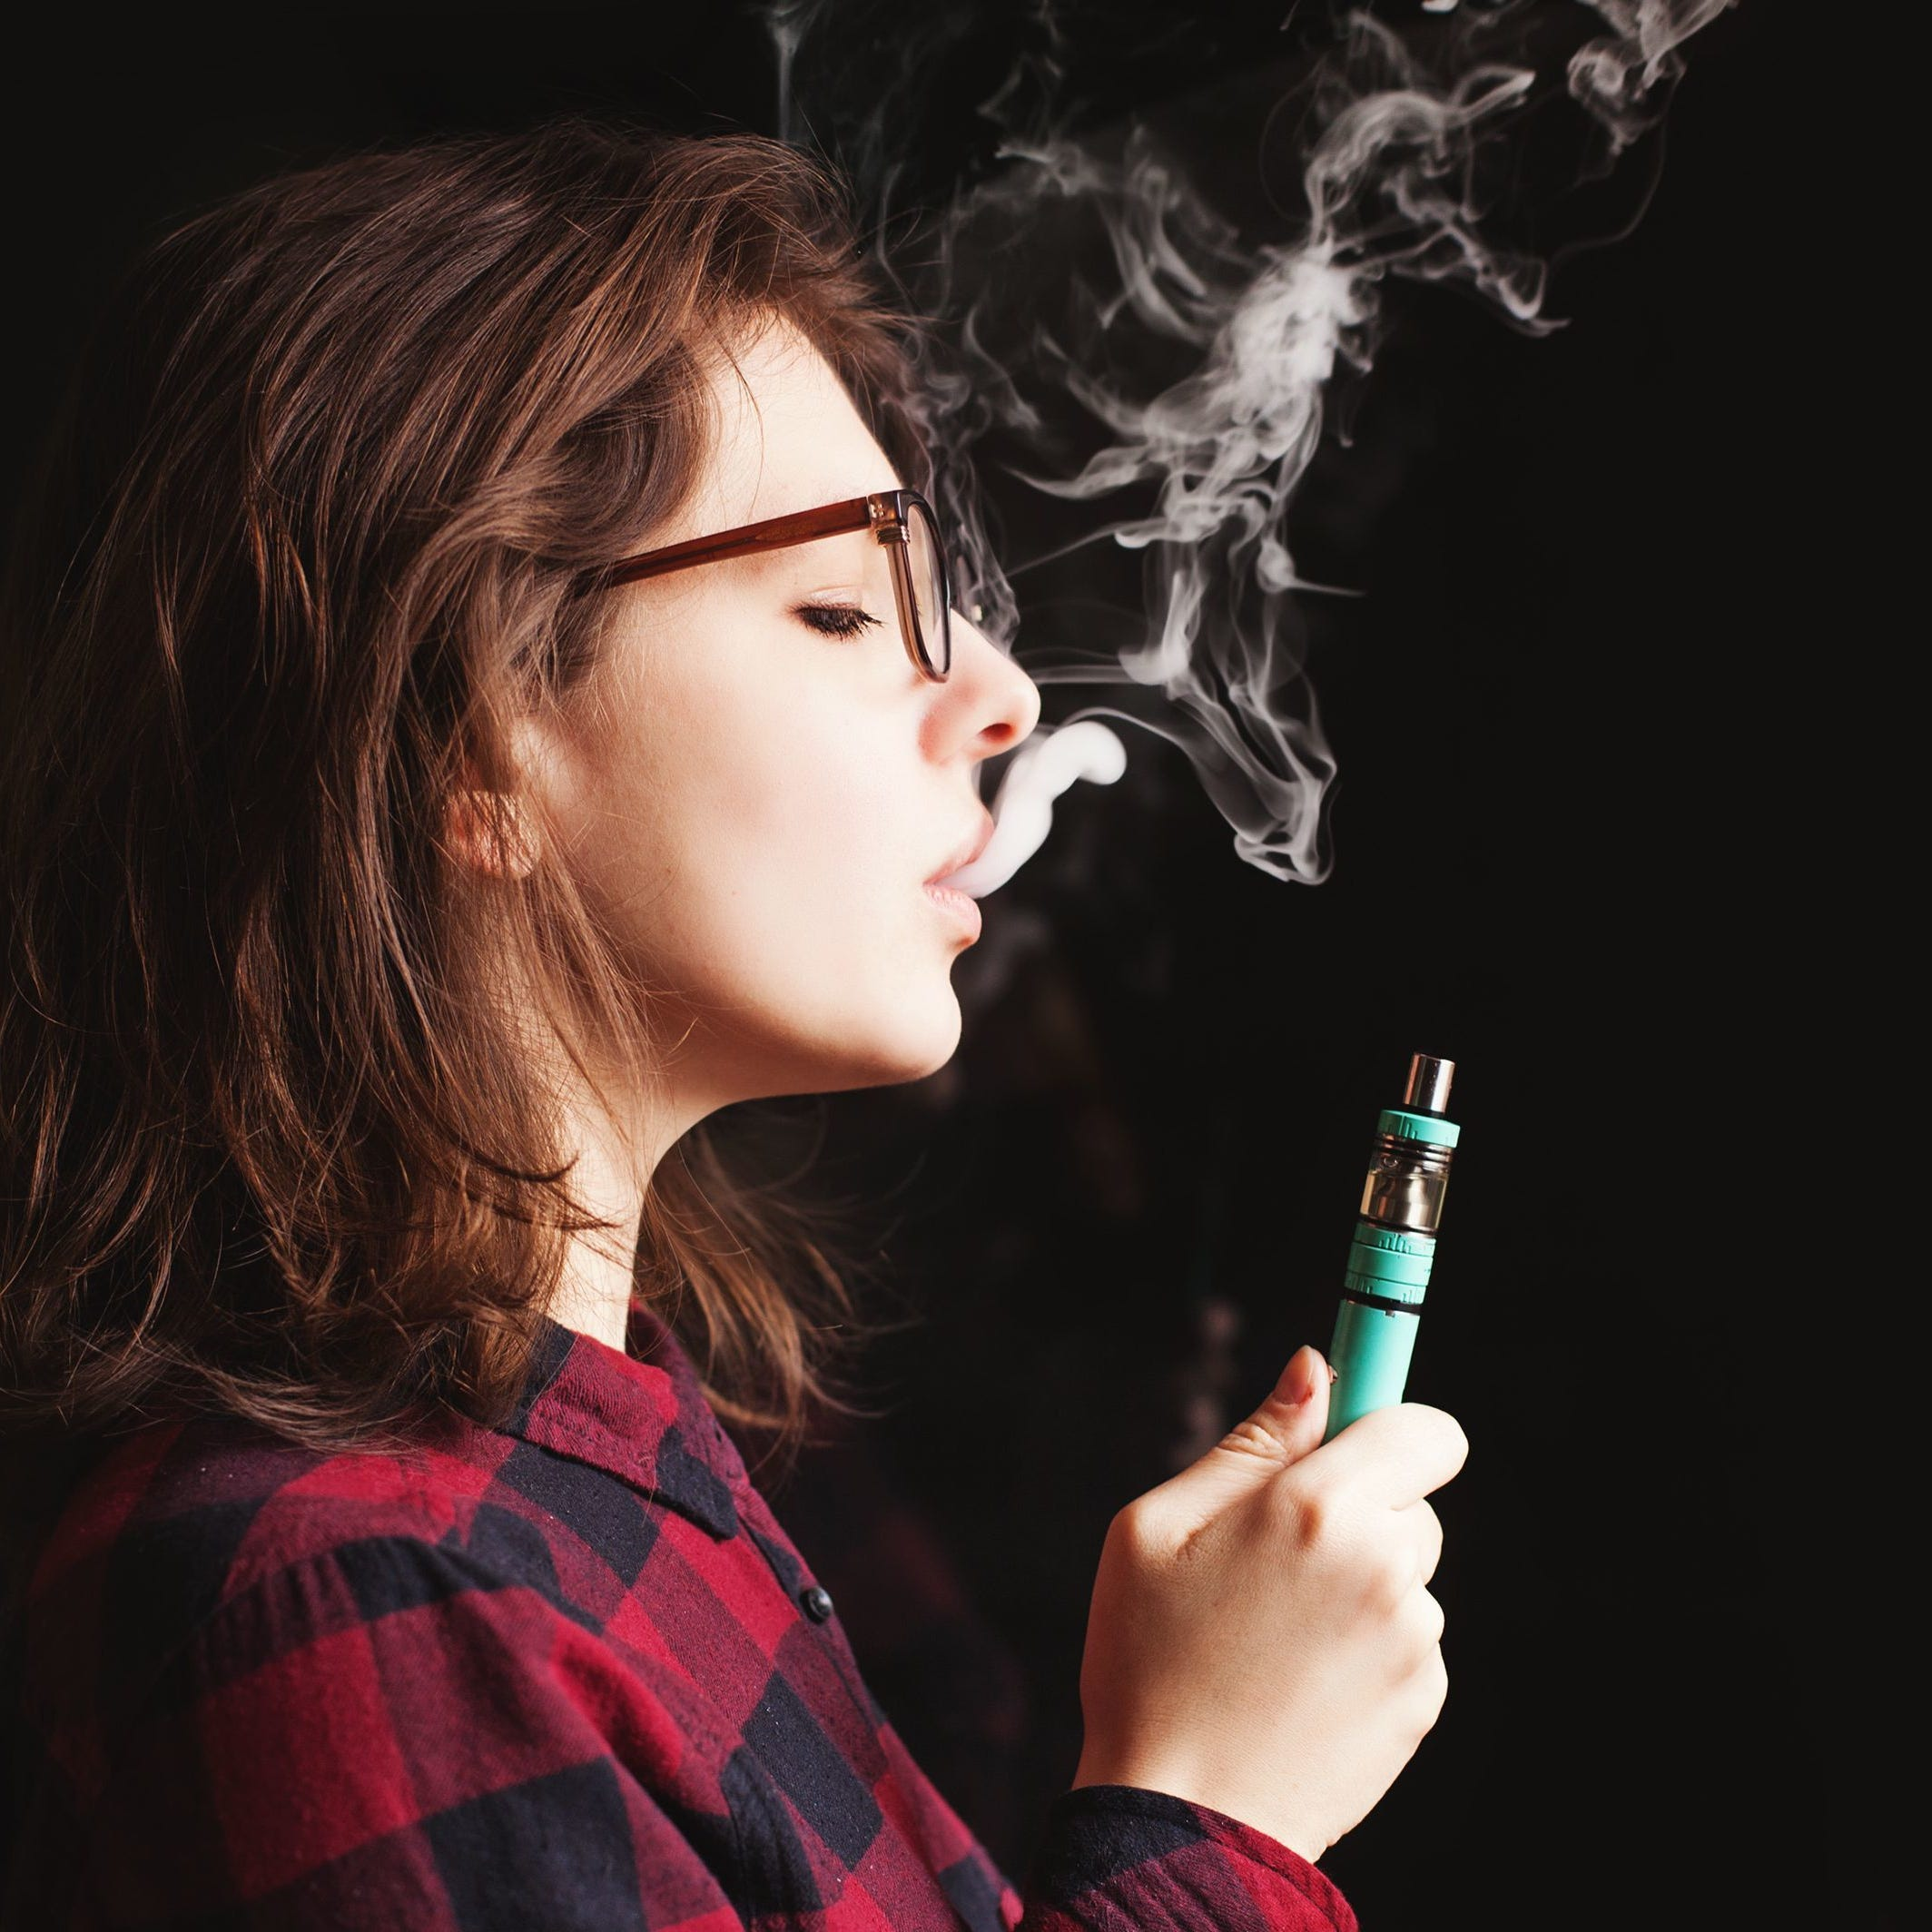 E-cigarettes: Rapid rise in teen vaping alarms health professionals